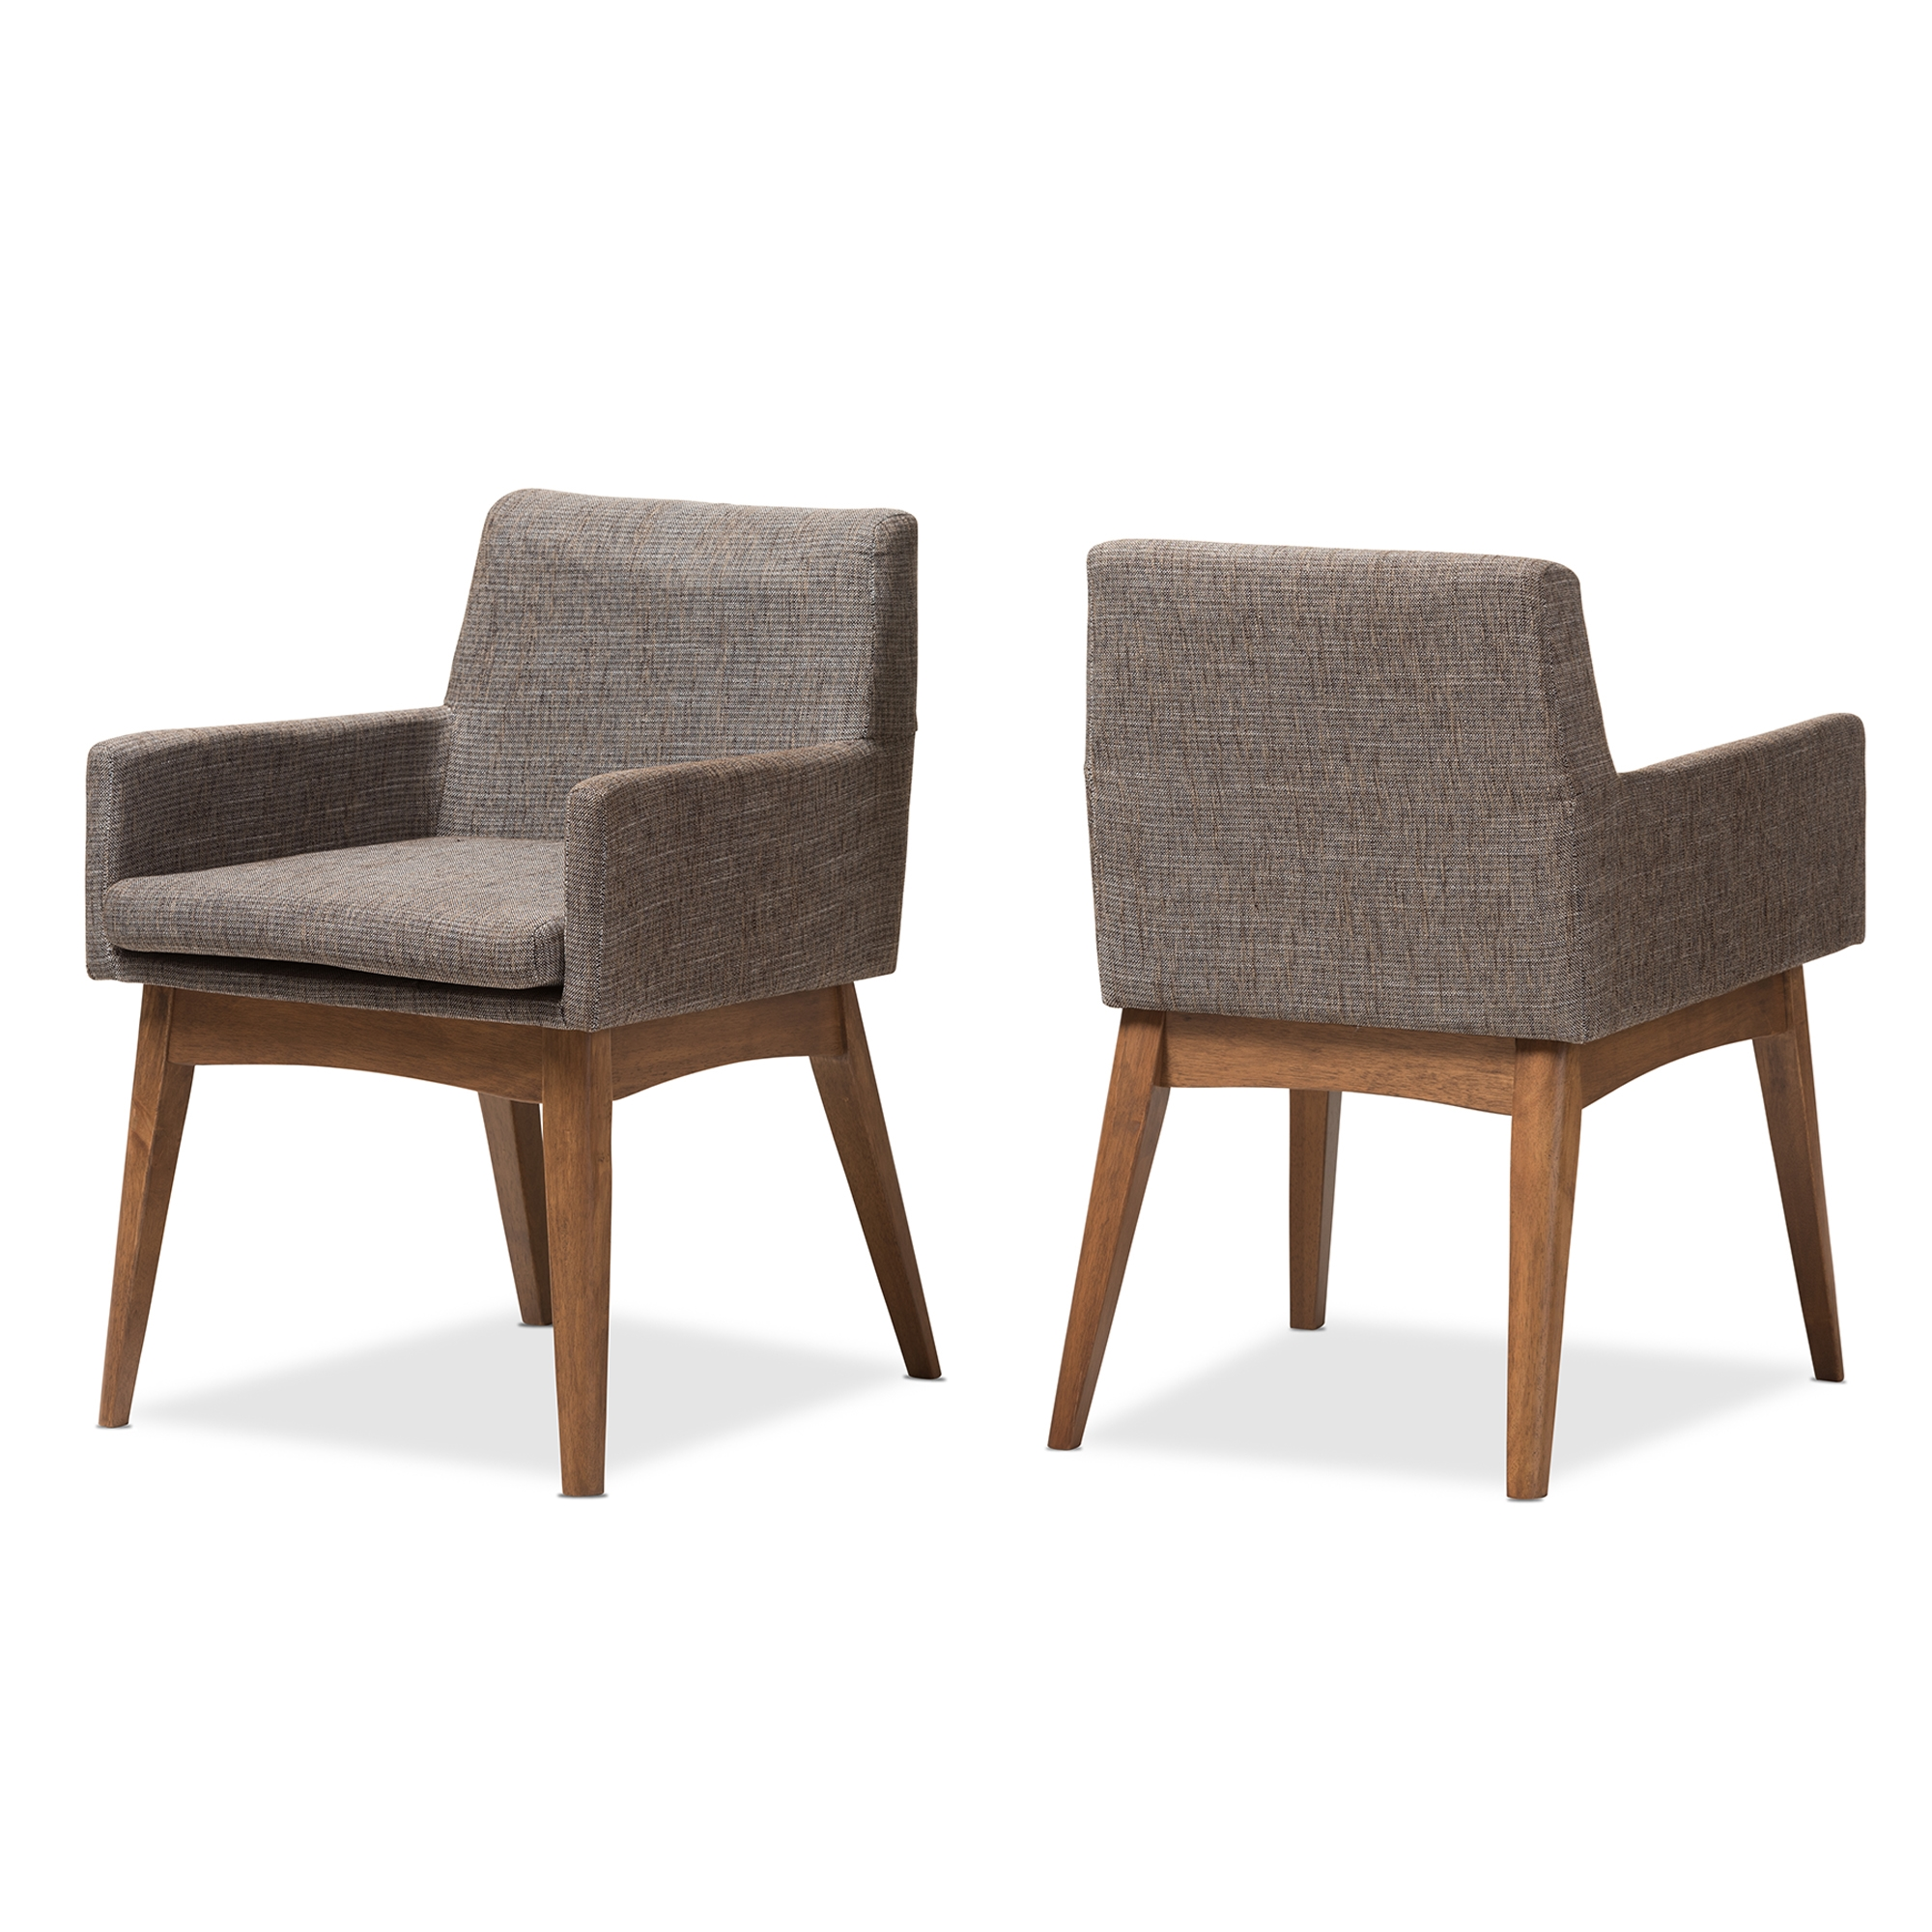 Dining ChairsDining Room FurnitureAffordable Modern